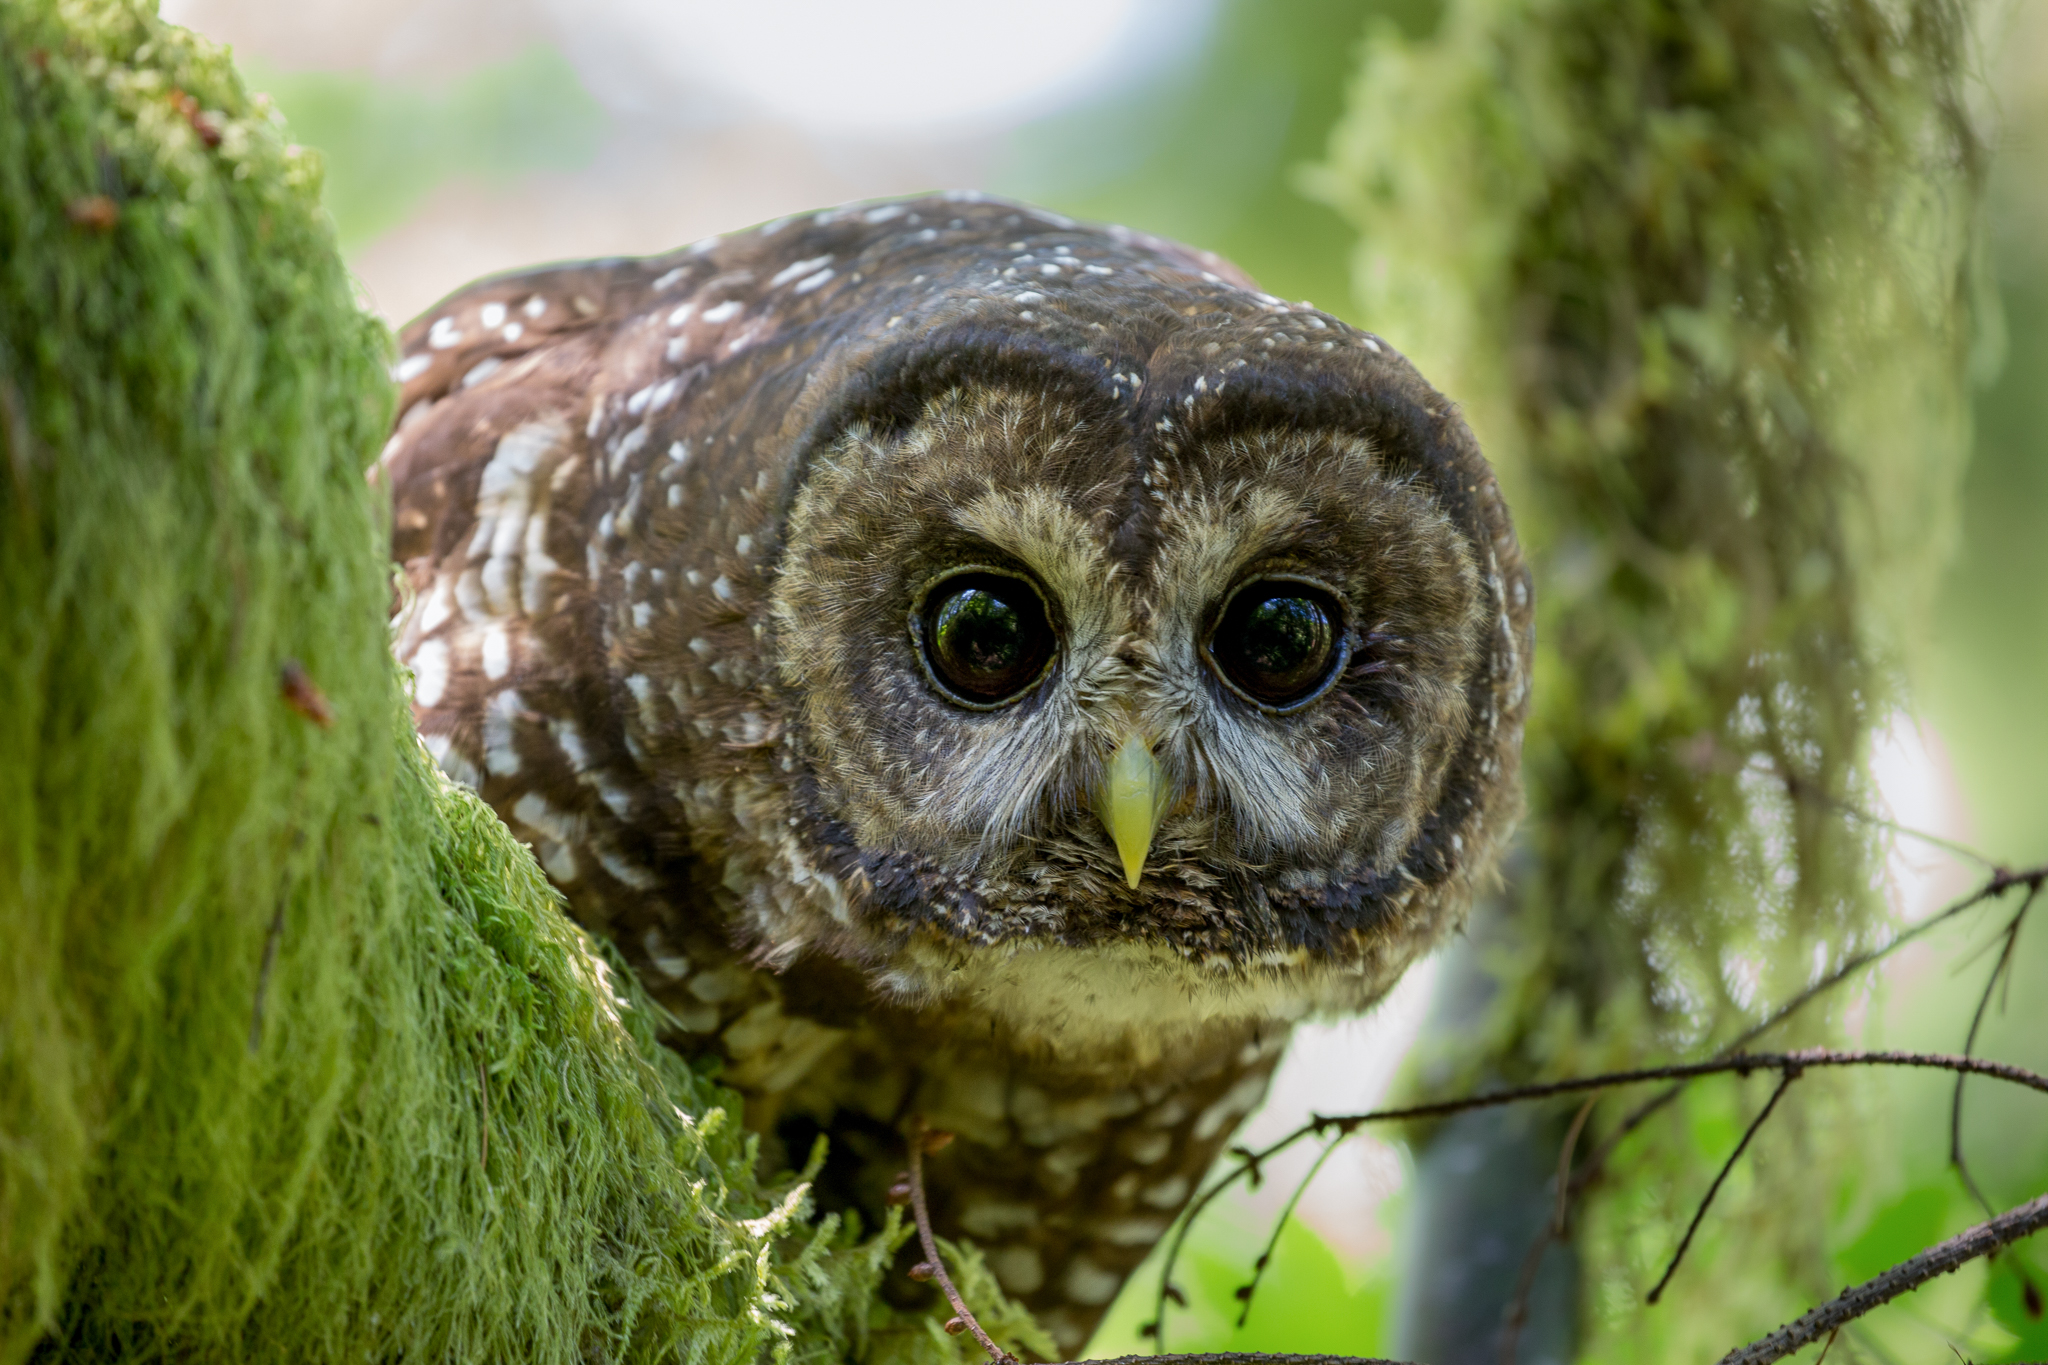 A watchful female northern spotted owl eyes the research team as they look to her for clues about the status of her nest.